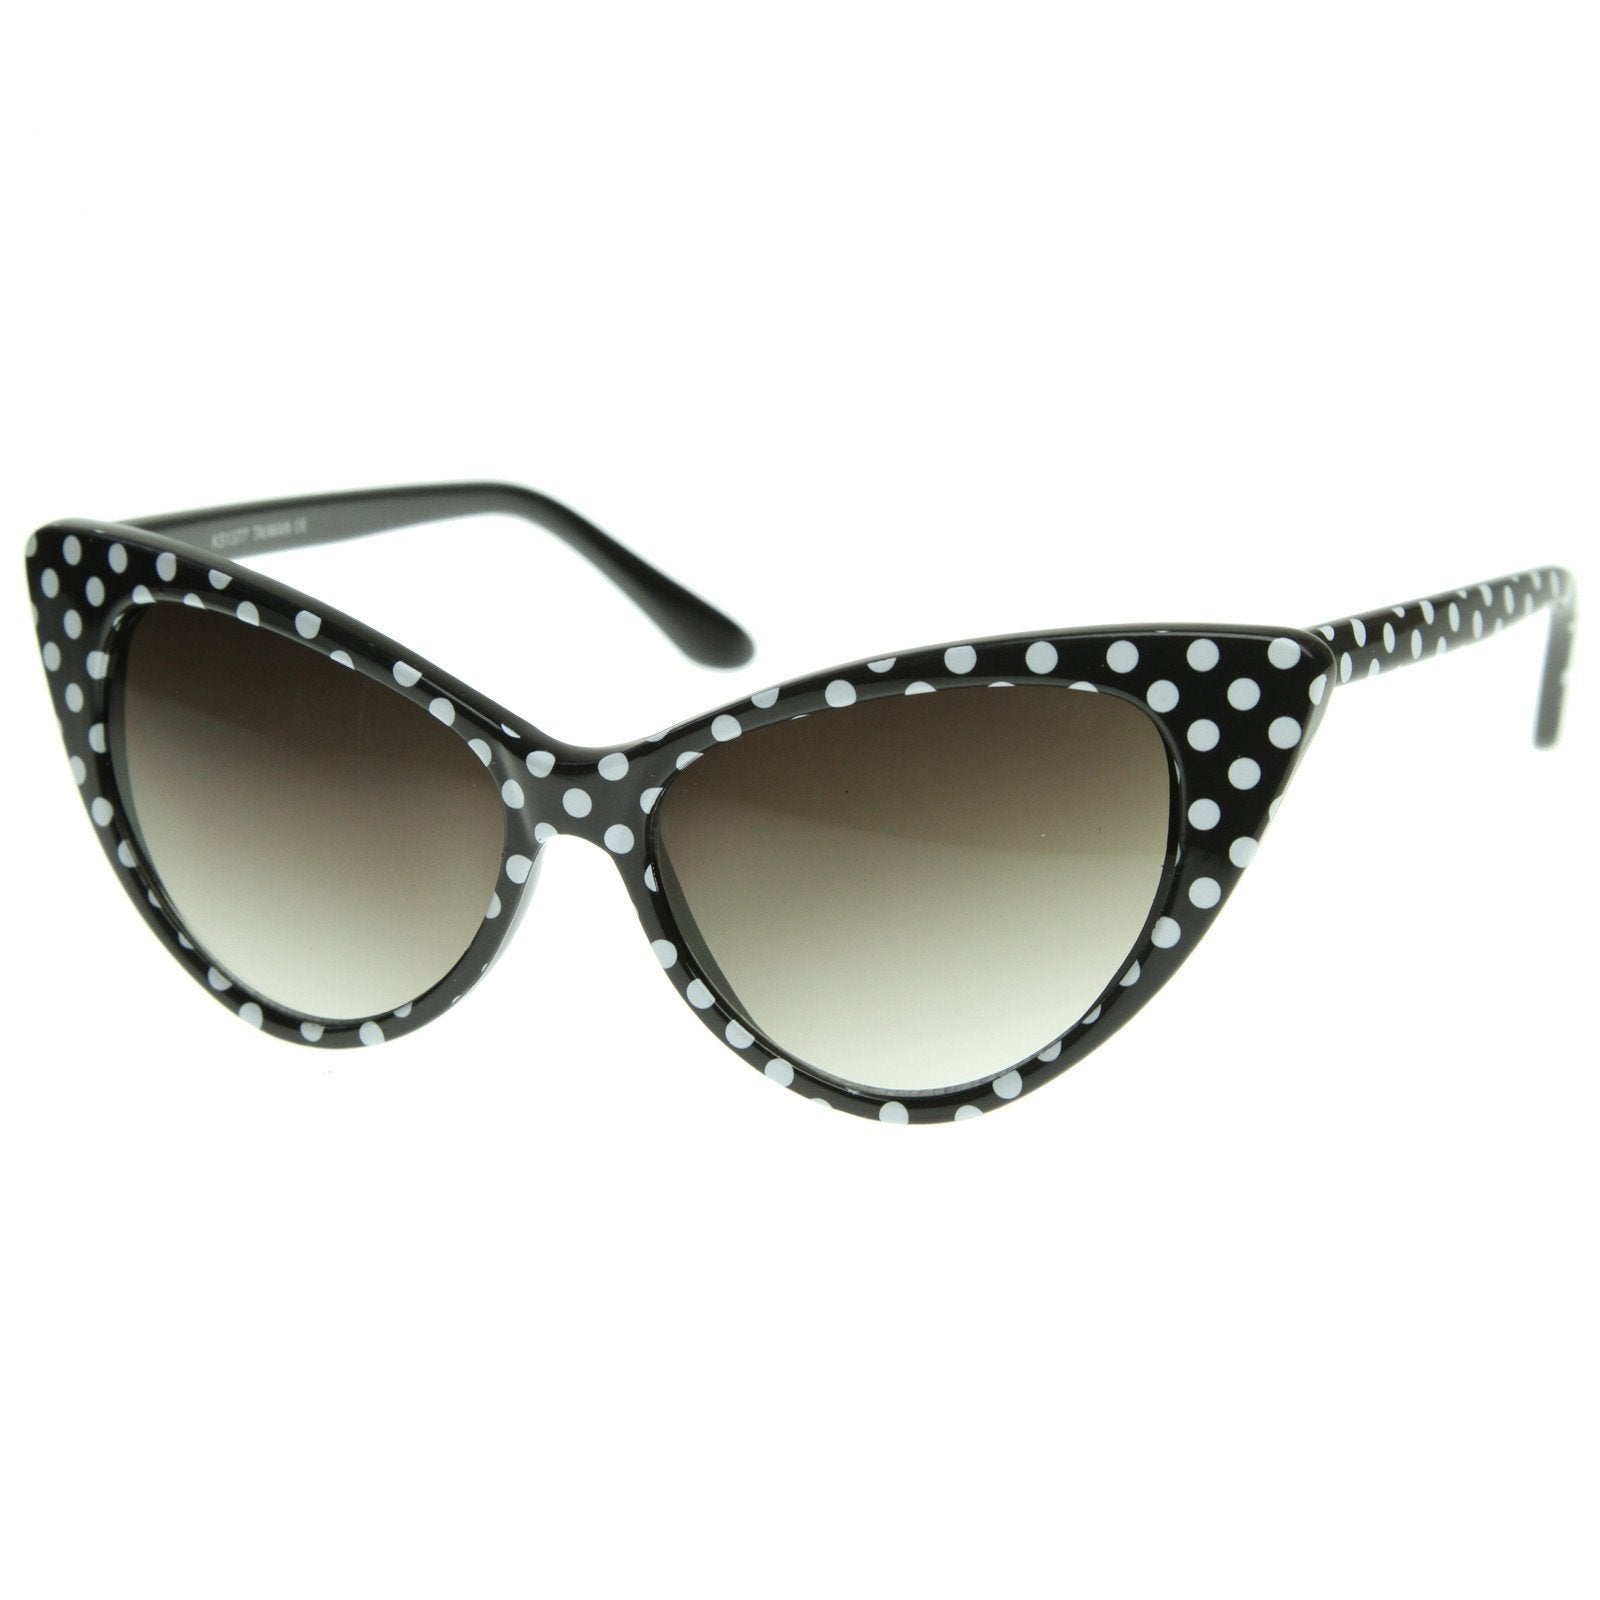 059d8c060ae Retro 1950 s Polka Dot Cat Eye Fashion Sunglasses 8498 · Black - White Dots